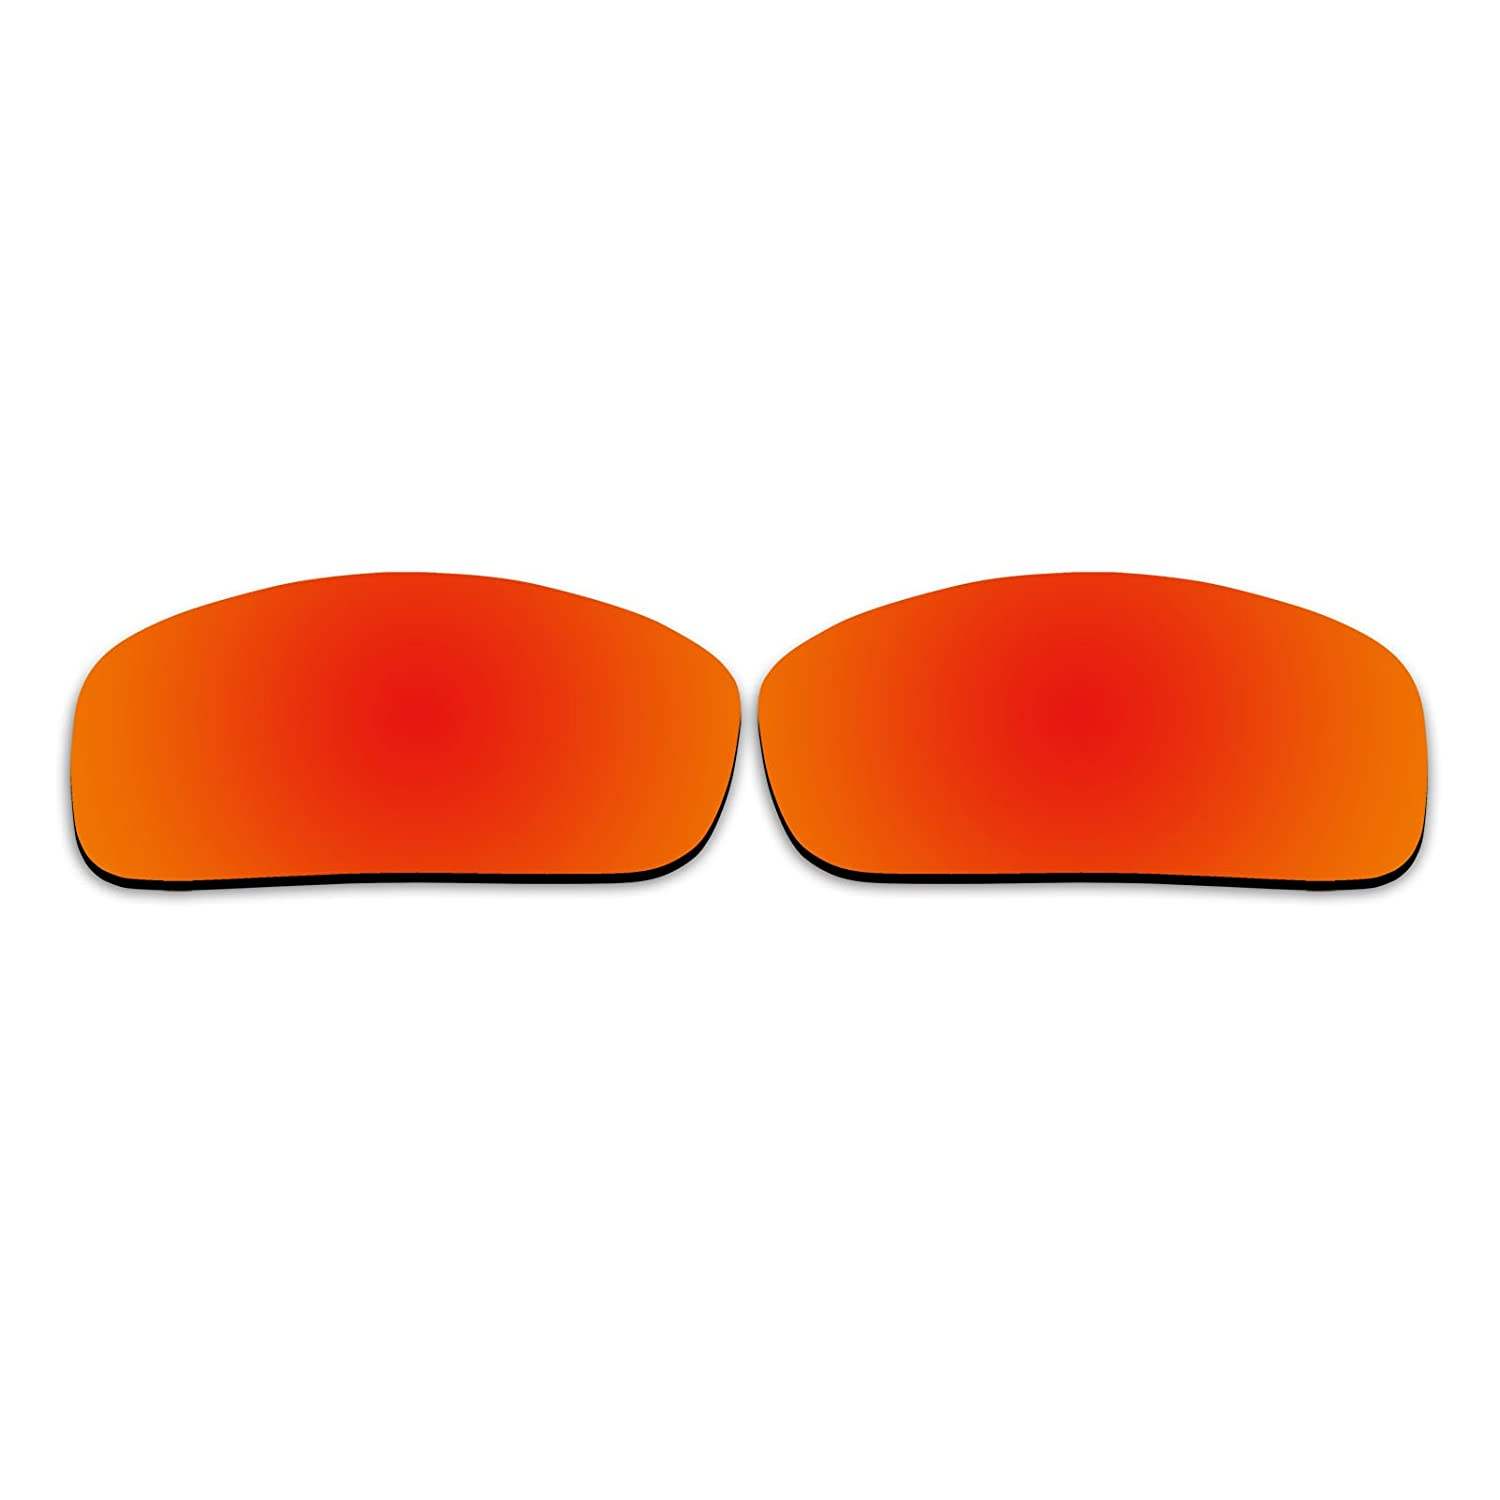 61a7ba345e5 Polarized Replacement Lenses for Spy Optic Hailwood Sunglasses Fire Red - -  Amazon.com